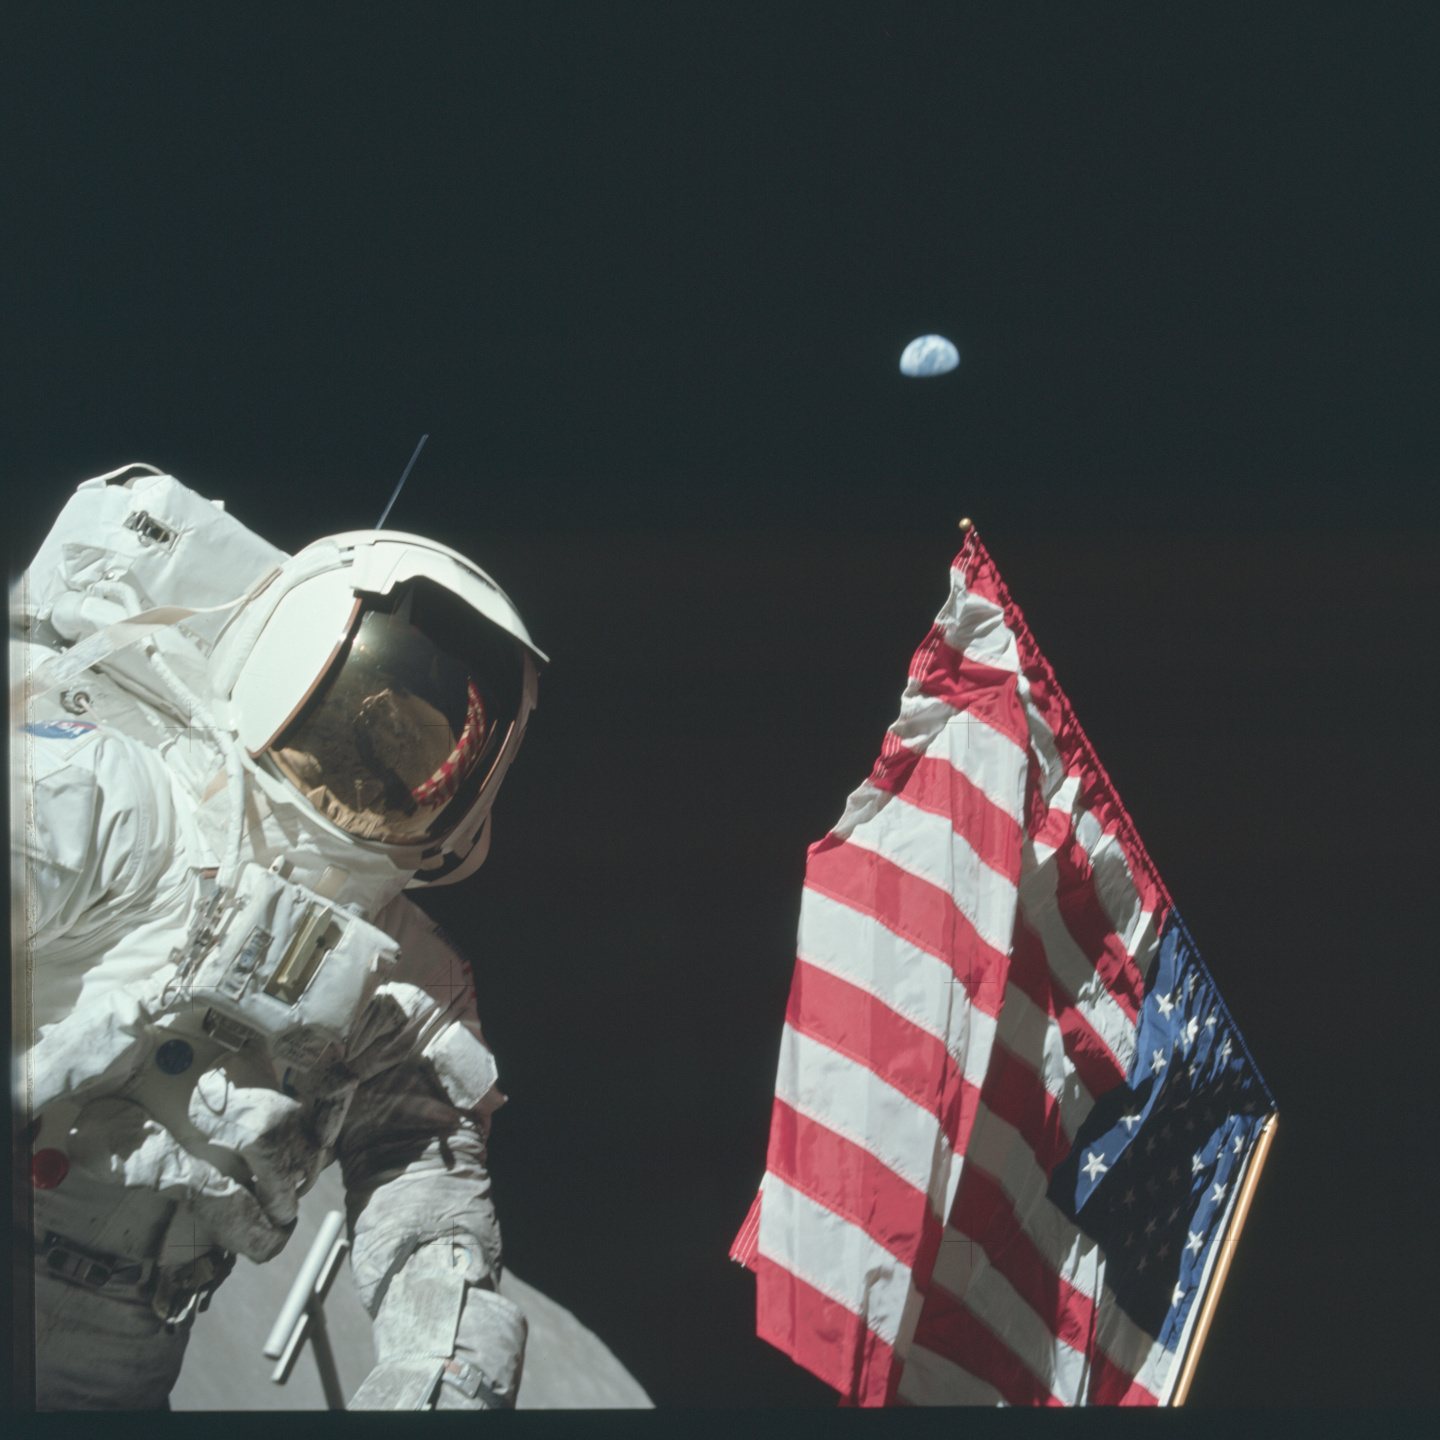 Filmstill of Apollo – Missions to the Moon | NASA/National Archives and Records Administrations (Public Domain)